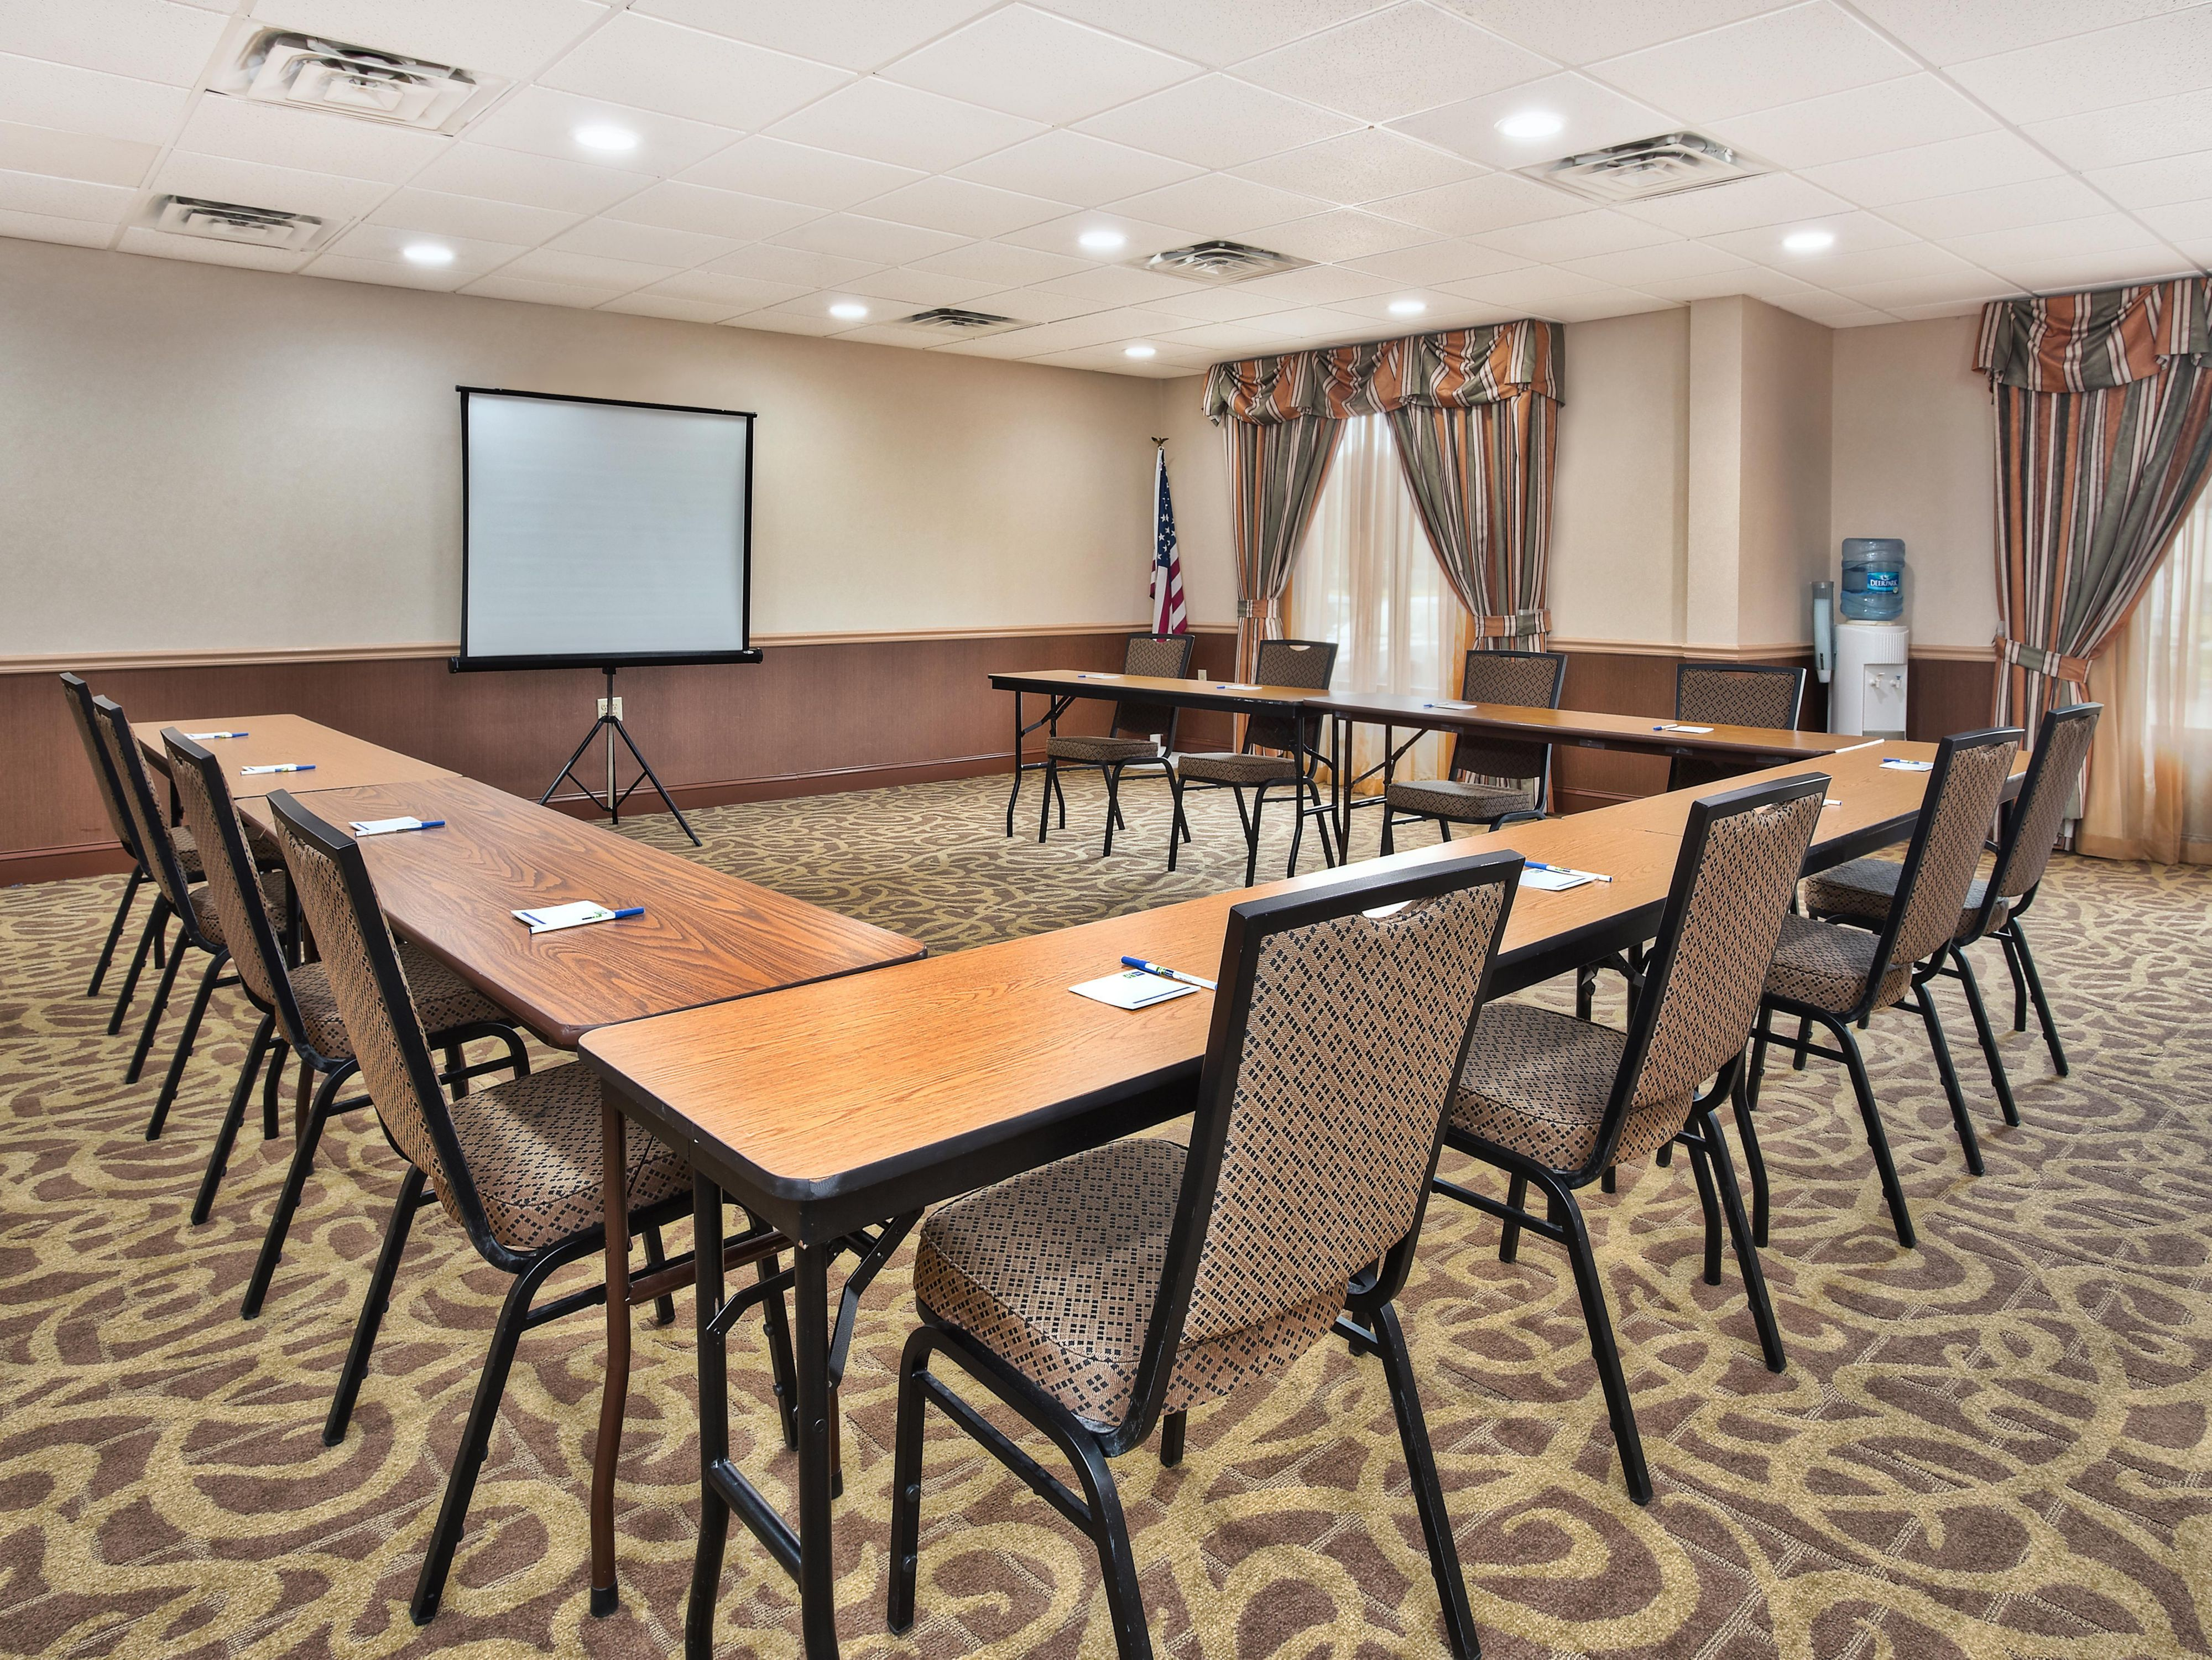 Having a business meeting,this space can accommodate up to 30 ppl